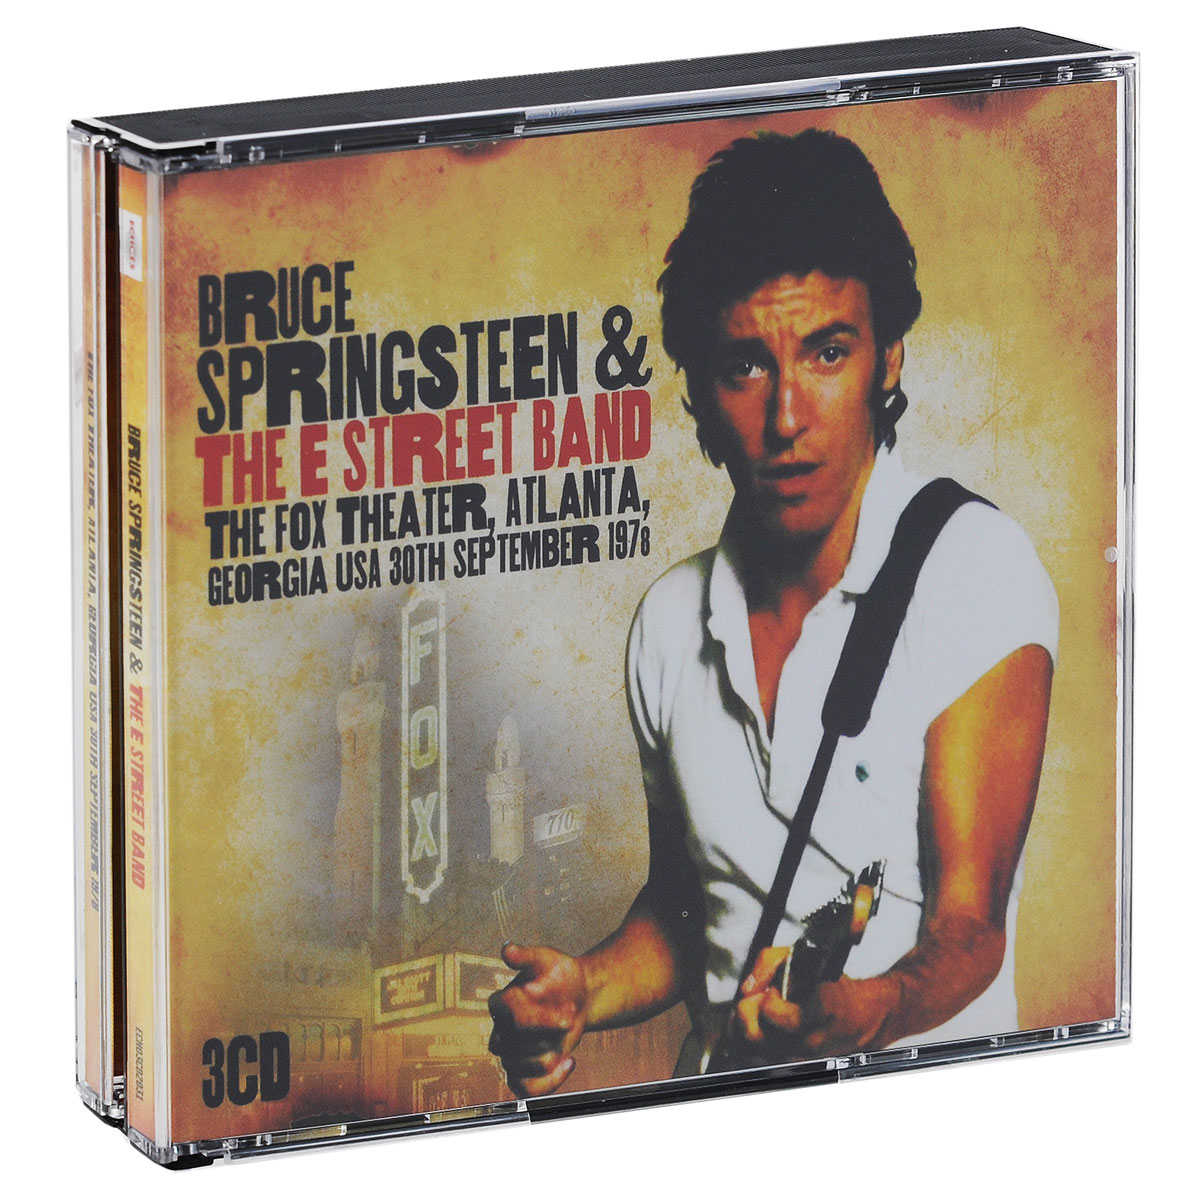 Bruce Springsteen & The Street Band. The Fox Theater, Atlanta, Georgia, USA, 30th September, 1978 (3 CD)